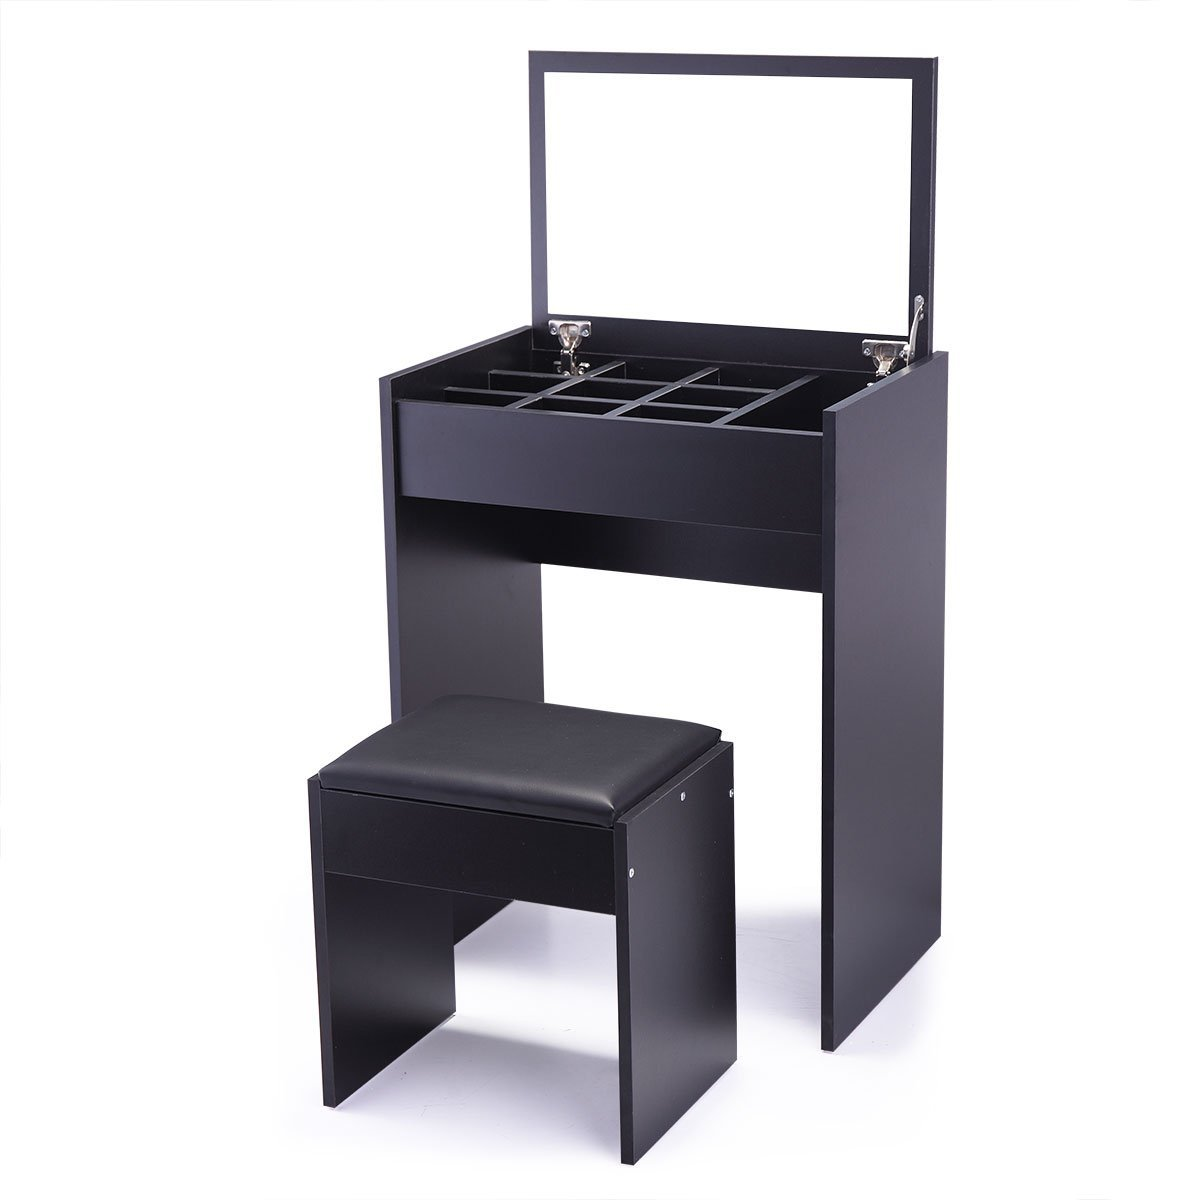 Tobbi Vanity Table and UpholsteredBench Set with Flip Top Mirror Drawer Jewelry Cabinet Black Finish